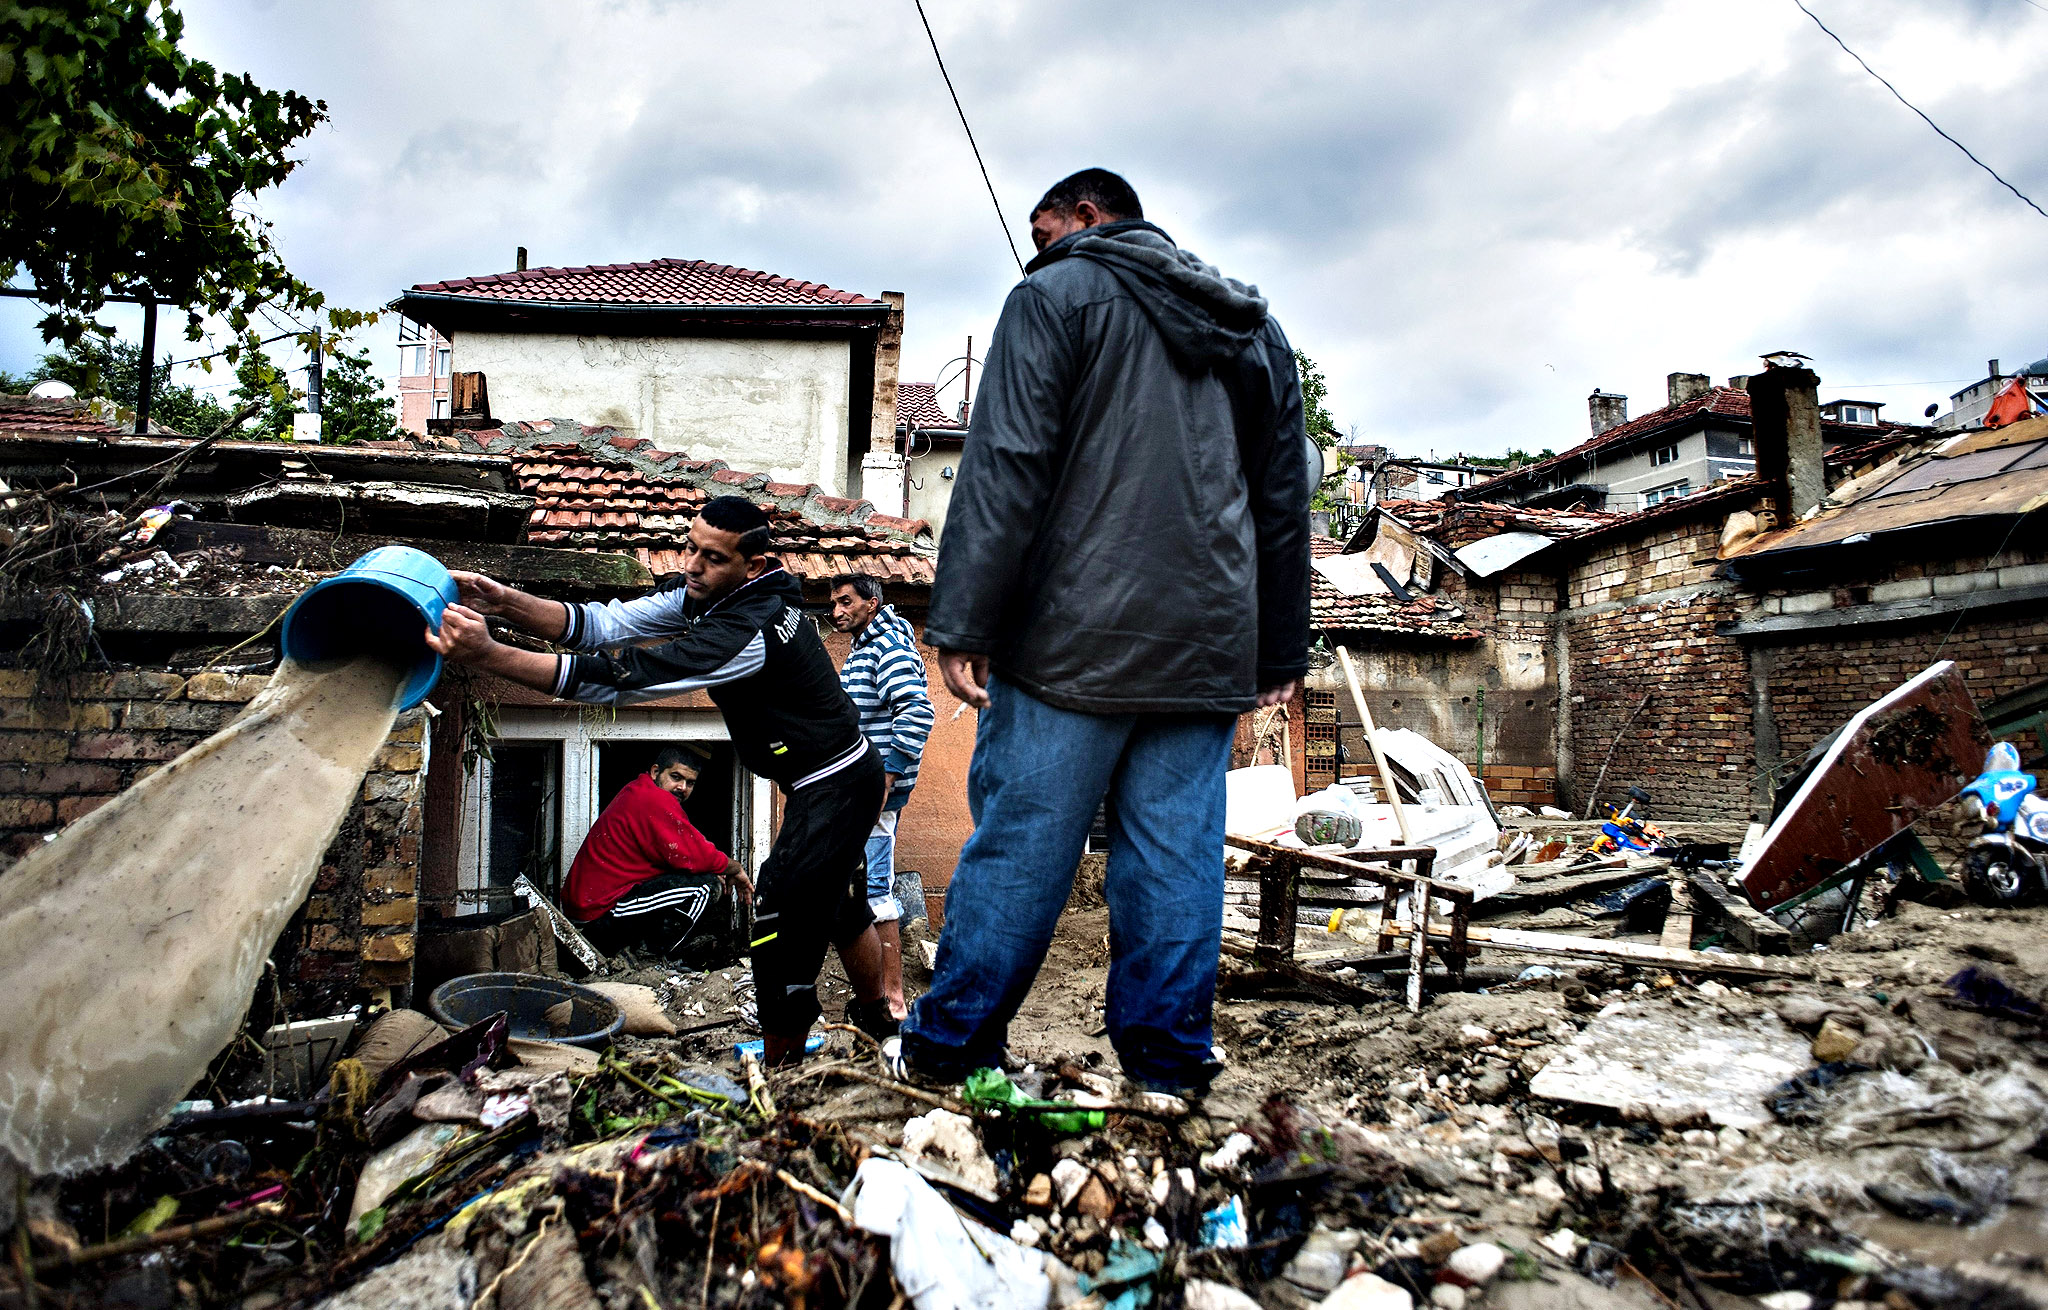 People are hand-draining their flooded house full of mud in the neighborhood of Asparuhovo in the Black Sea city of Varna, Bulgaria, 20 June 2014. At least 11 people, two of them children, have died after torrential rains caused flooding in eastern Bulgaria, the Interior Minstry said. Ten of the victims were found in the Black Sea port of Varna and another in Dobrich, 35 kilometres to the north. Several people were still missing. Lower sections of Varna were completely submerged. The floodwaters swept cars away and the work of rescue teams was hampered because of the drifting vehicles.